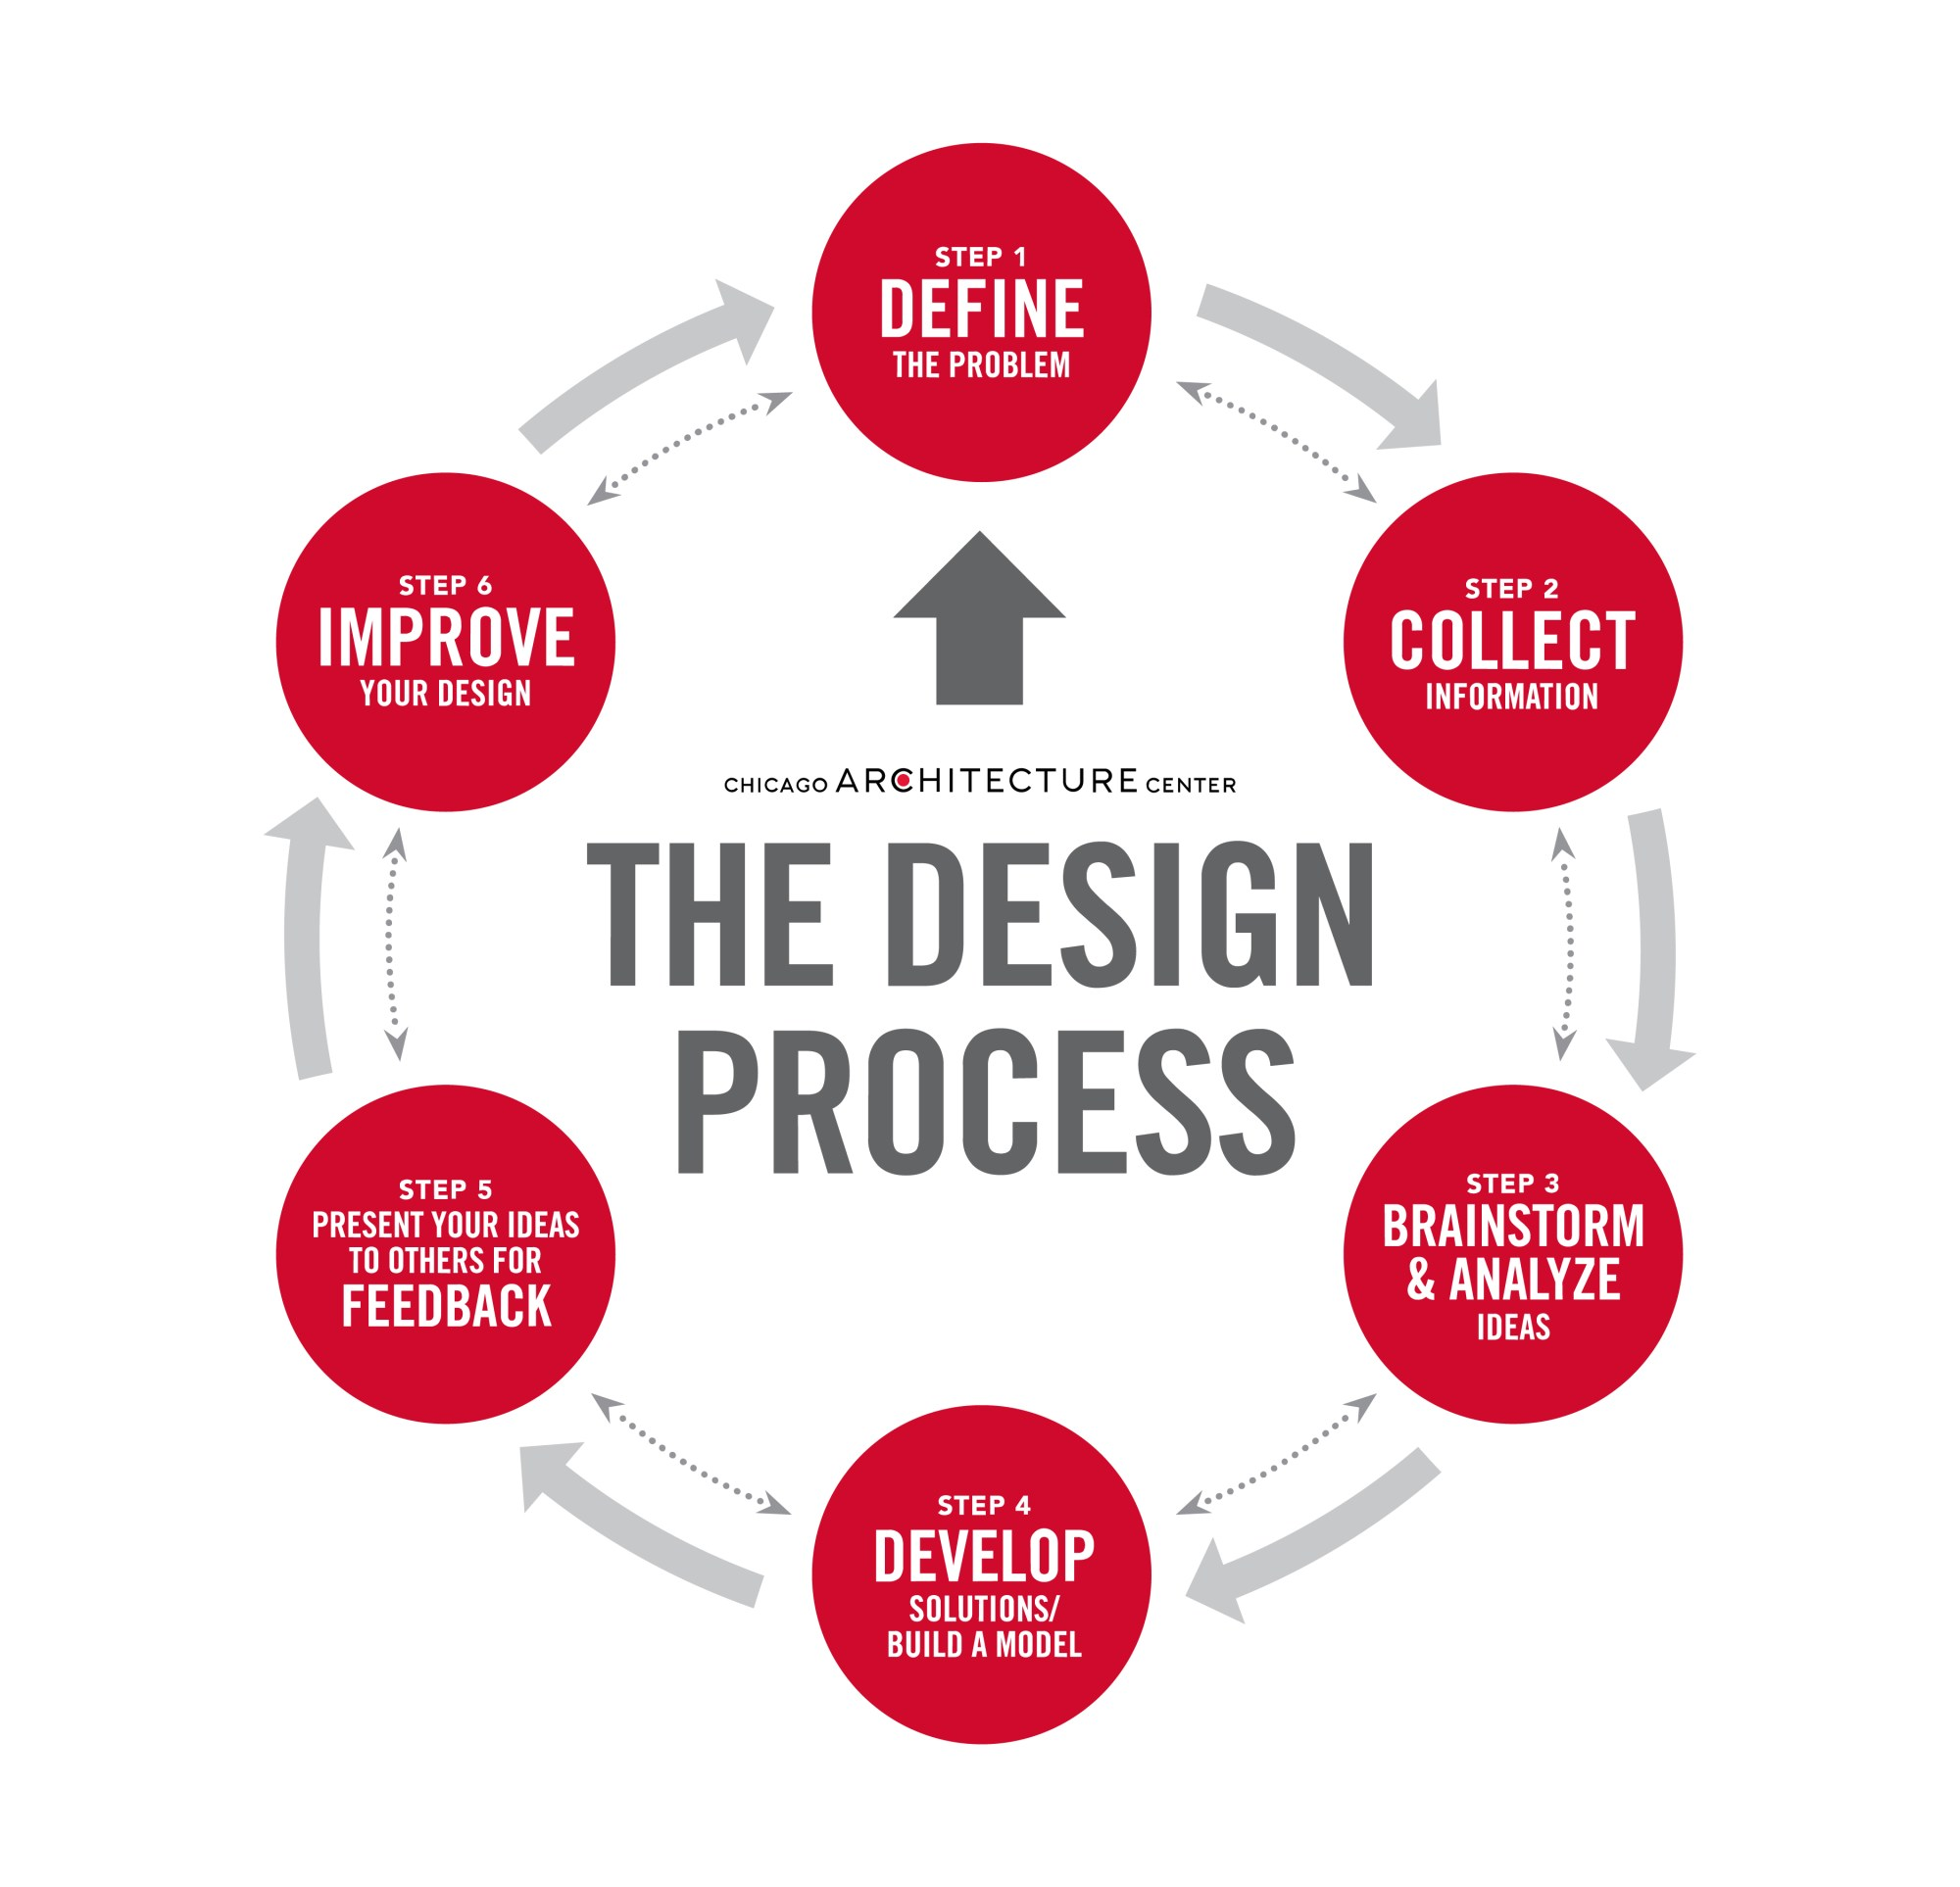 hight resolution of diagram of the design process showing six steps